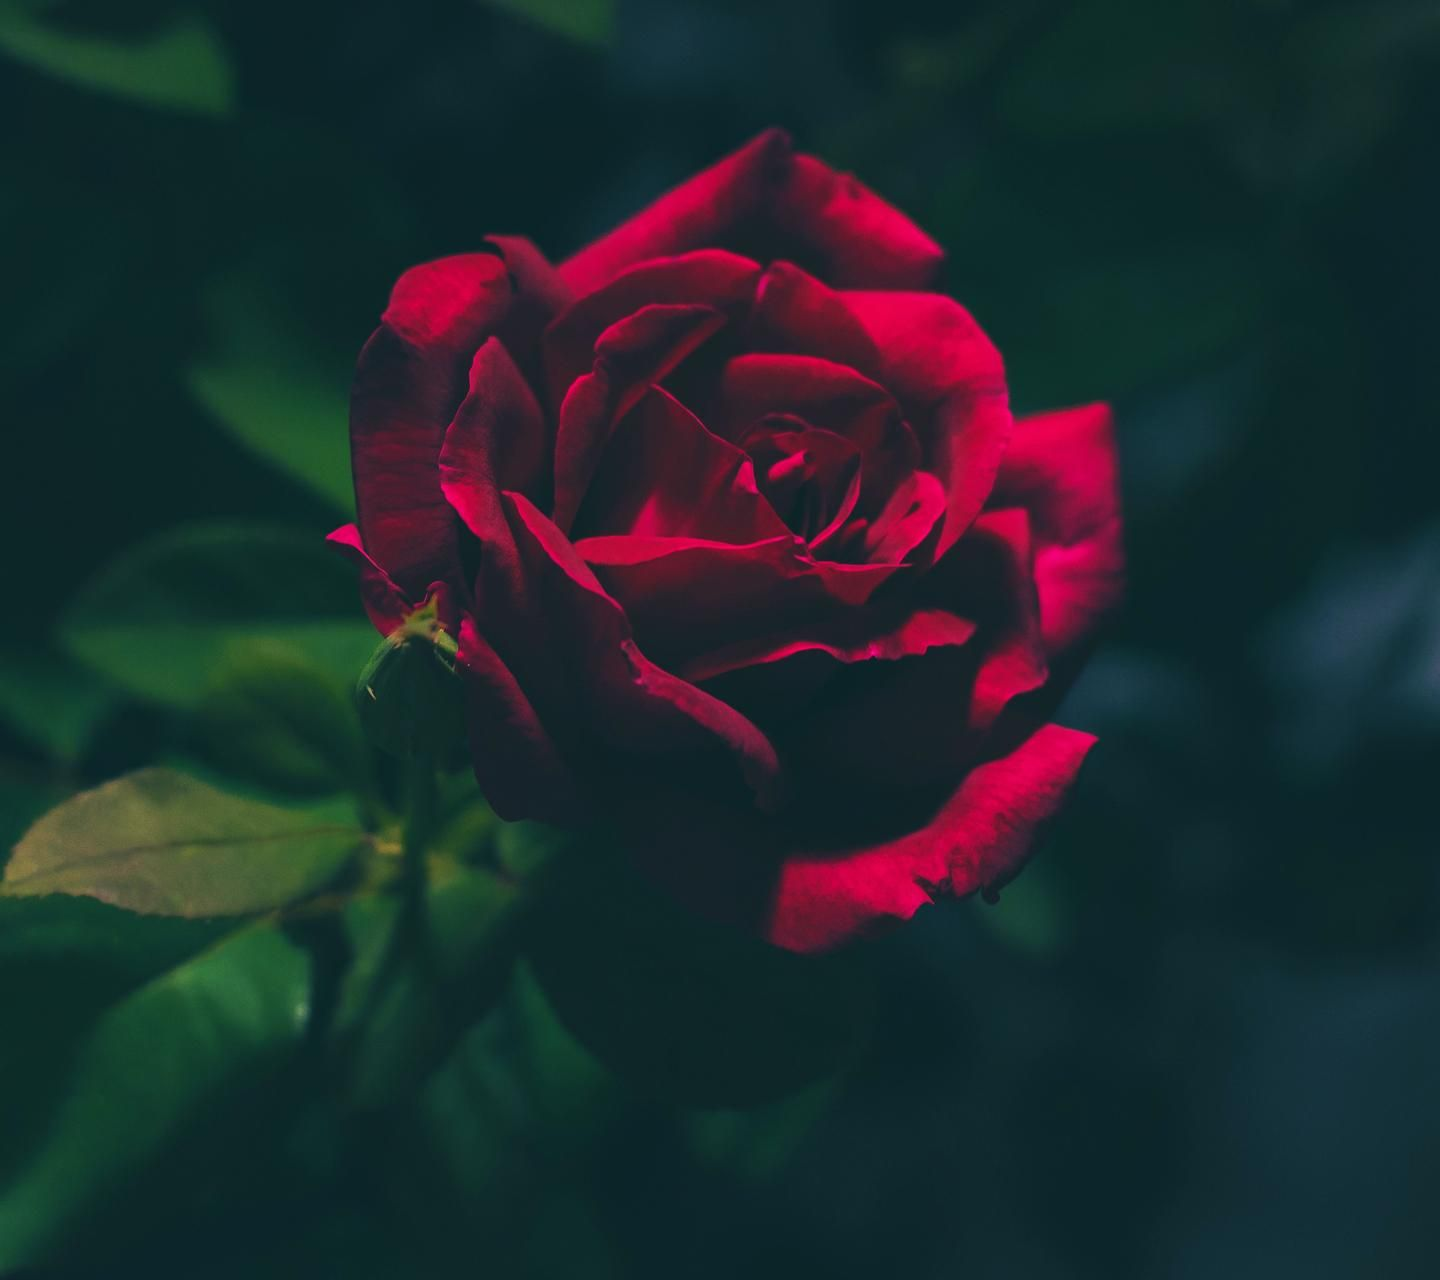 Download Rose Wallpaper Now Browse Millions Of Popular Wallpapers And Ringtones On Zedge And Persona Red Roses Wallpaper Wallpaper Iphone Roses Rose Wallpaper